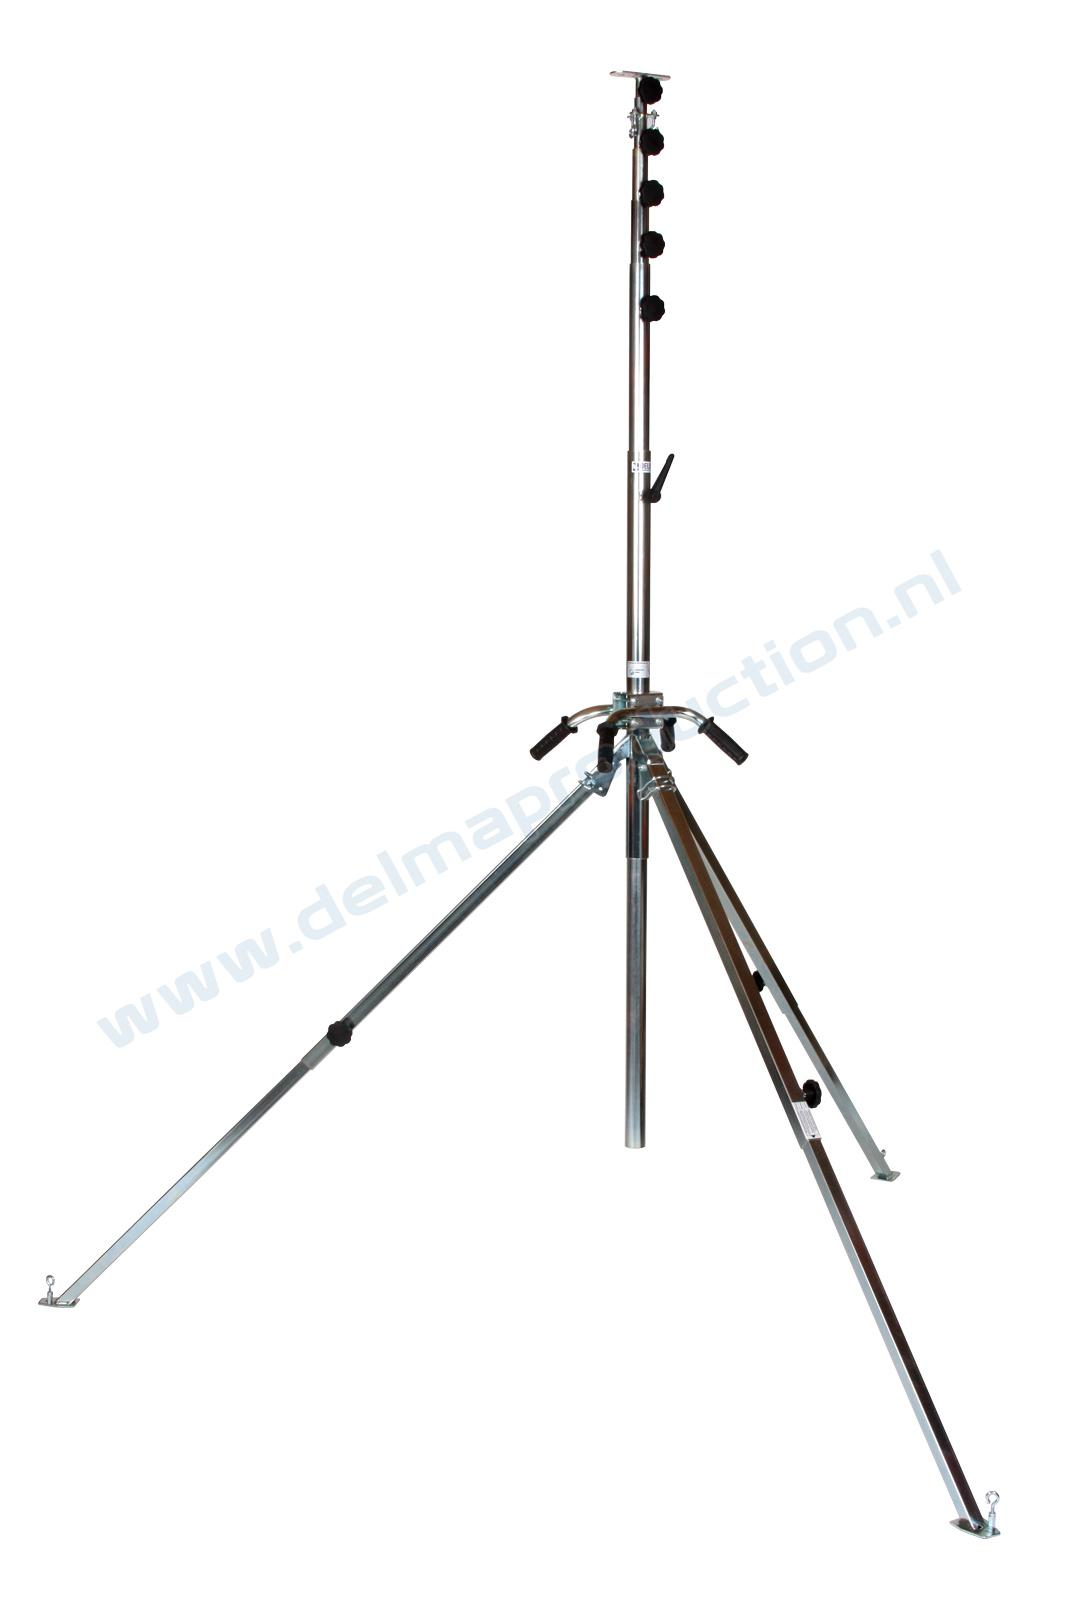 Tripod worklight stand 6-part, adjustable undercarriage, quick release strip (1)